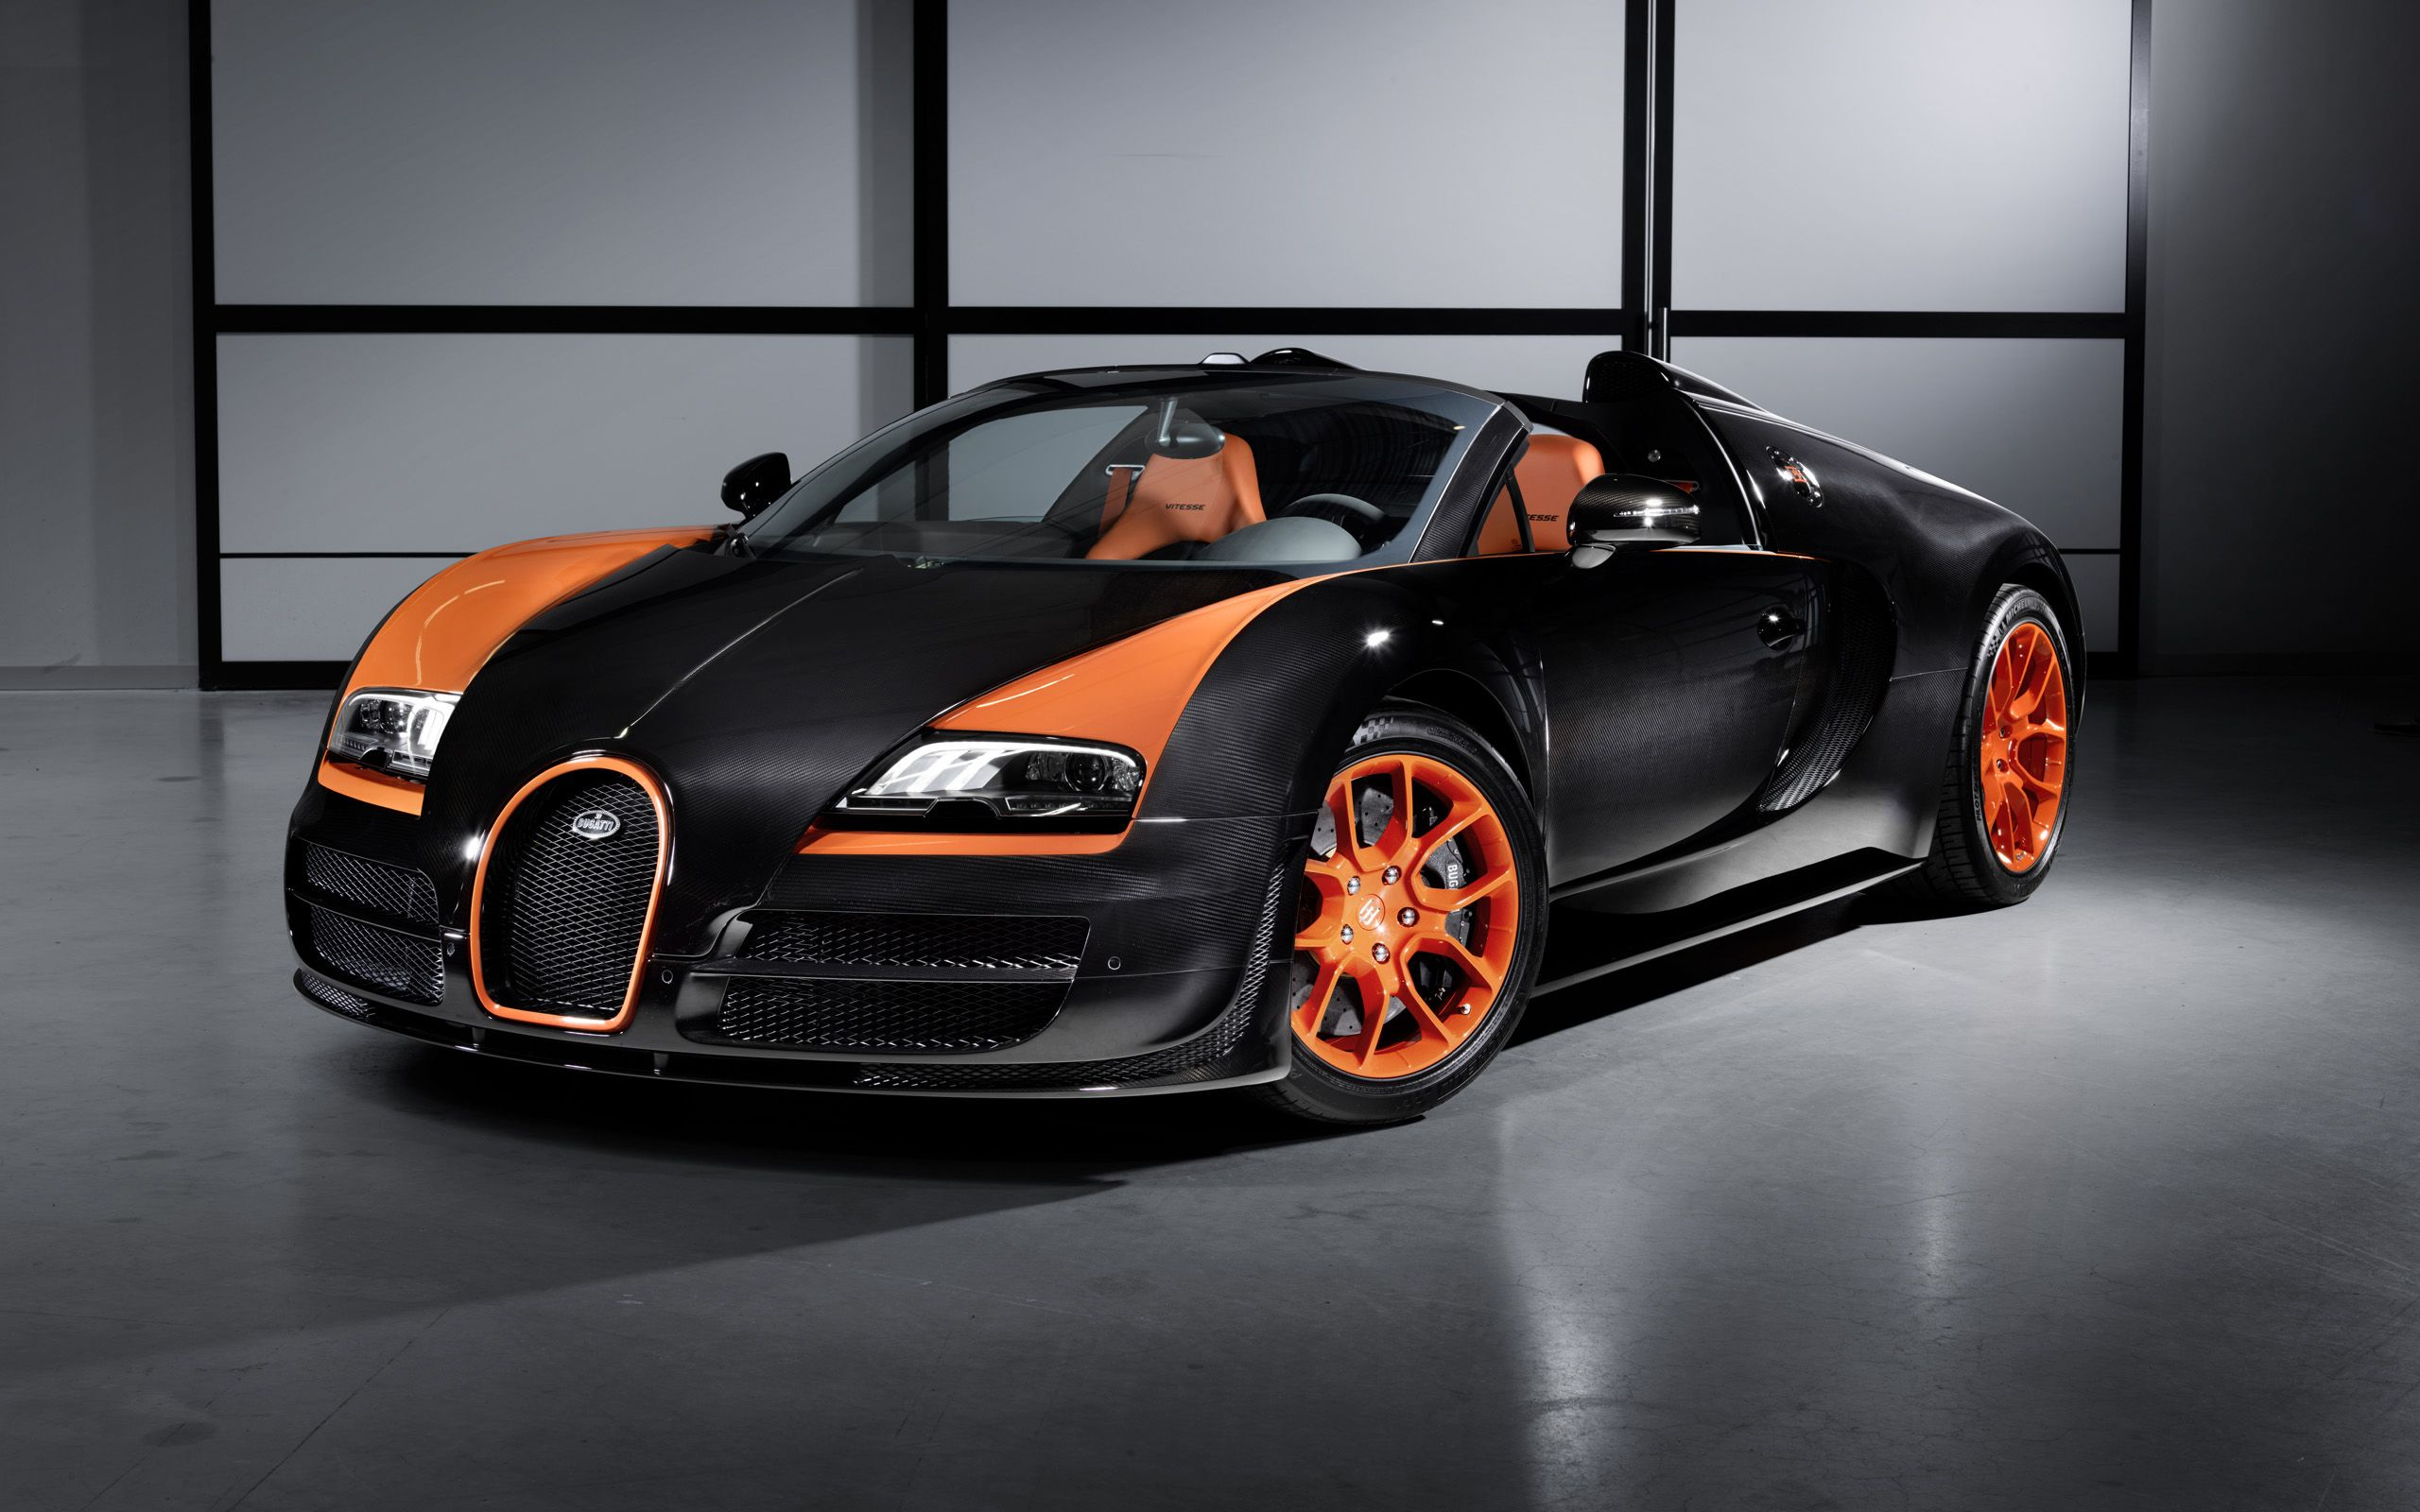 de6cc8063a985e4799780e8506a967ee Elegant Need for Speed Most Wanted Bugatti Veyron Grand Sport Vitesse Location Cars Trend